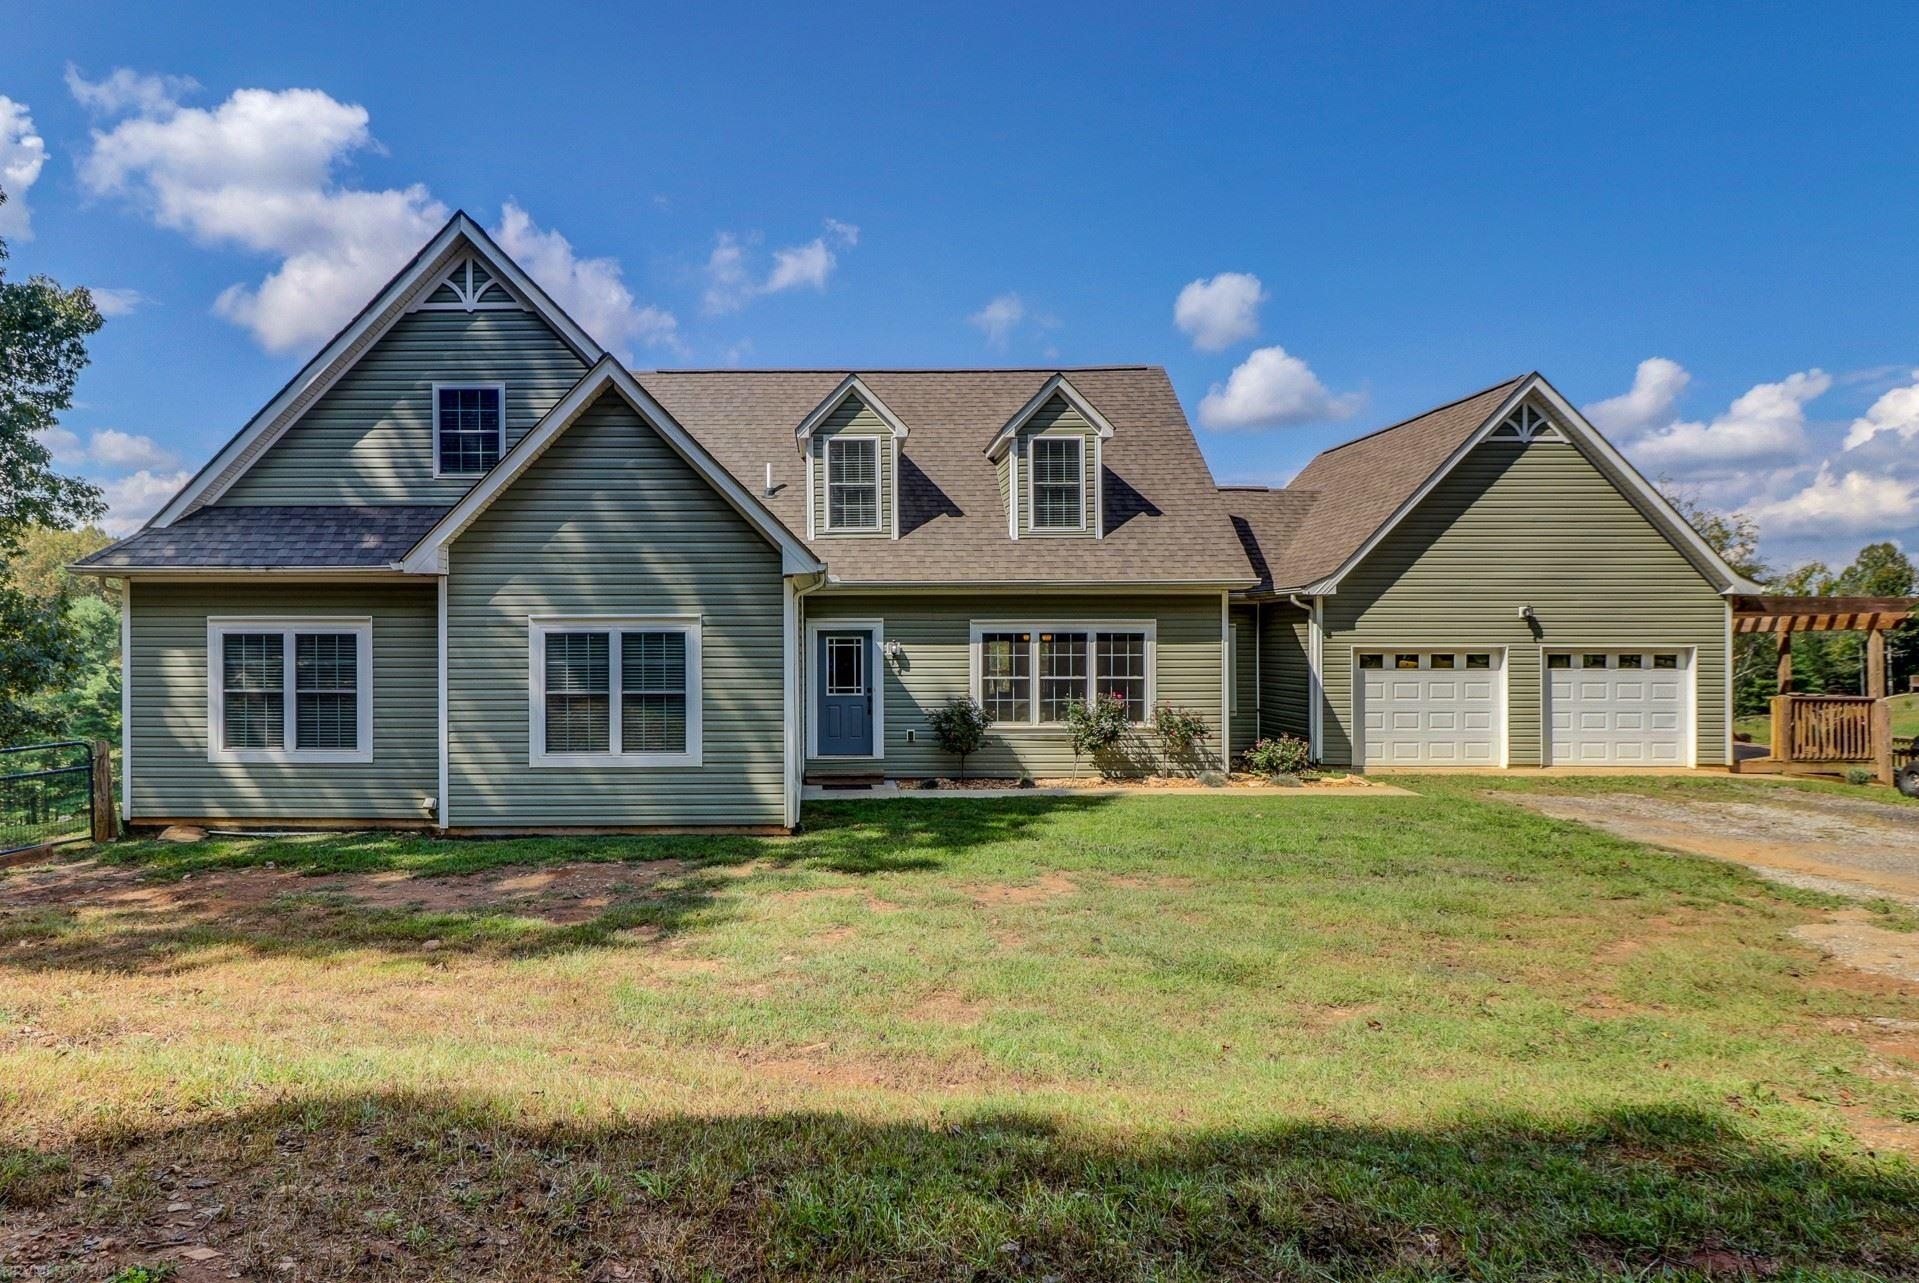 Highlighted by hardwood floors, Ceramic tile, Granite countertops, 2 master suites, 2 fireplaces including one in master suite, a two car garage, Spacious great room and large deck (1,100 sqft) set on 7+ private acres. Two car detached garage with heating, air conditioning, water & cable.